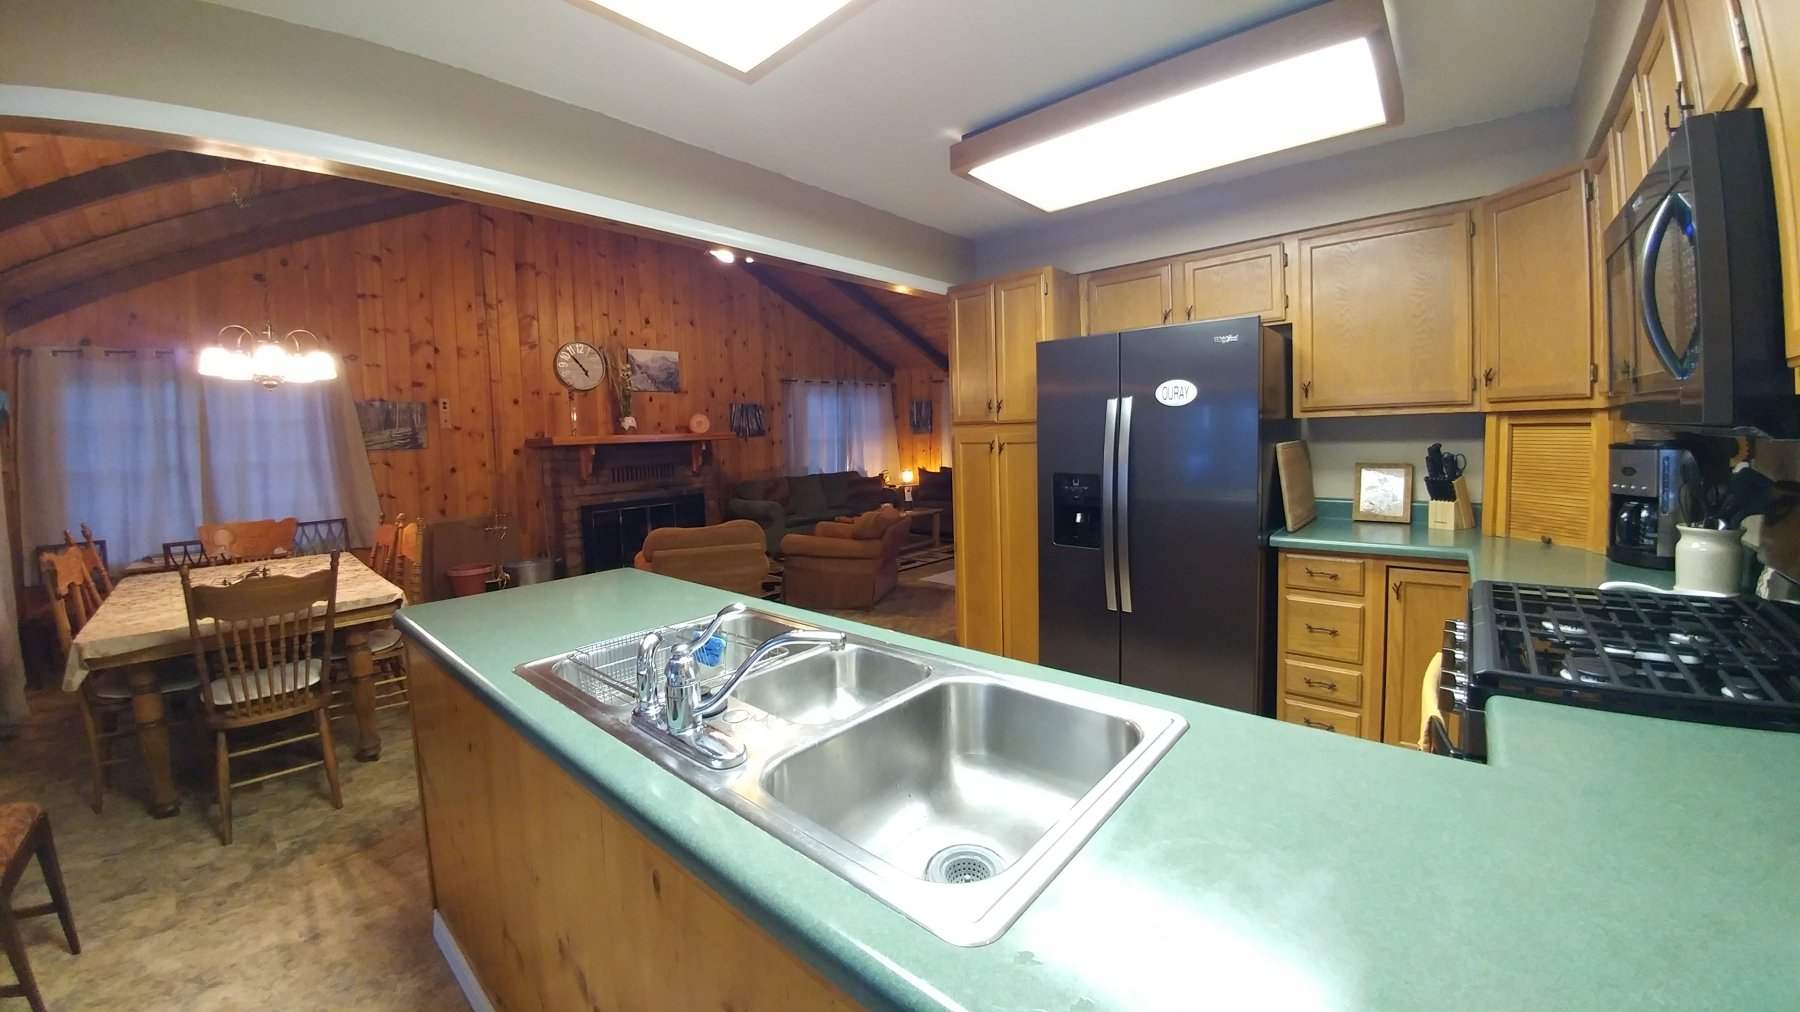 Cabin home for rent, short-term and long-term rentals